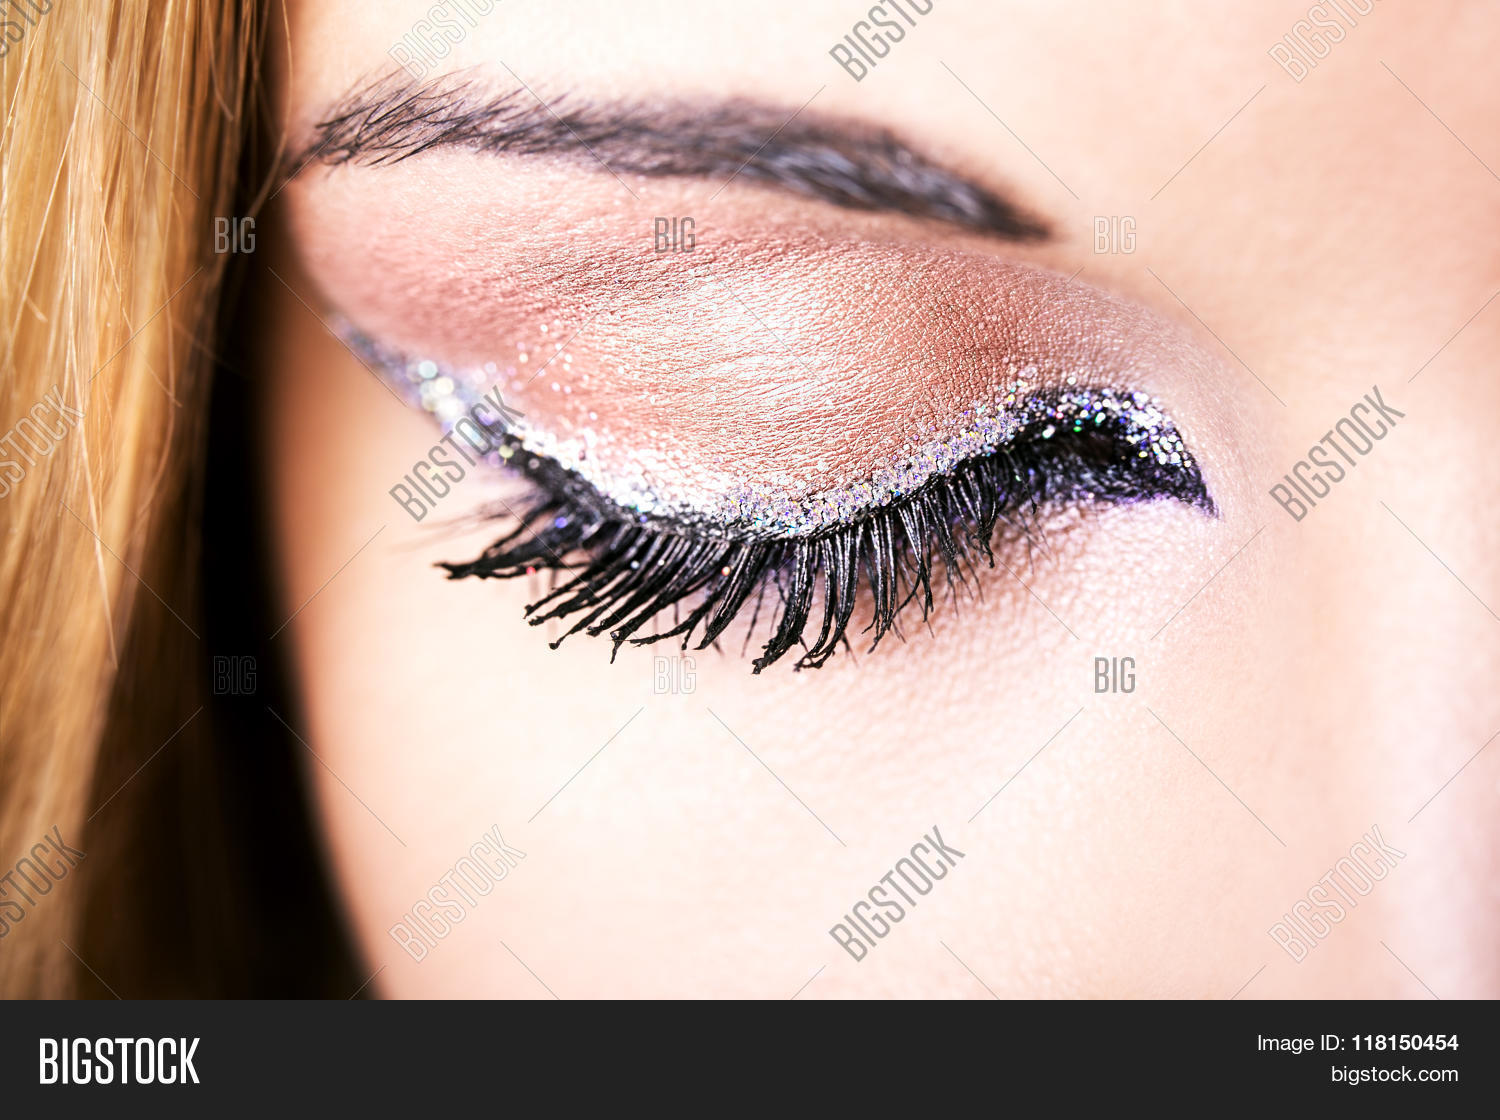 Eye Makeup Beautiful Image Photo Free Trial Bigstock